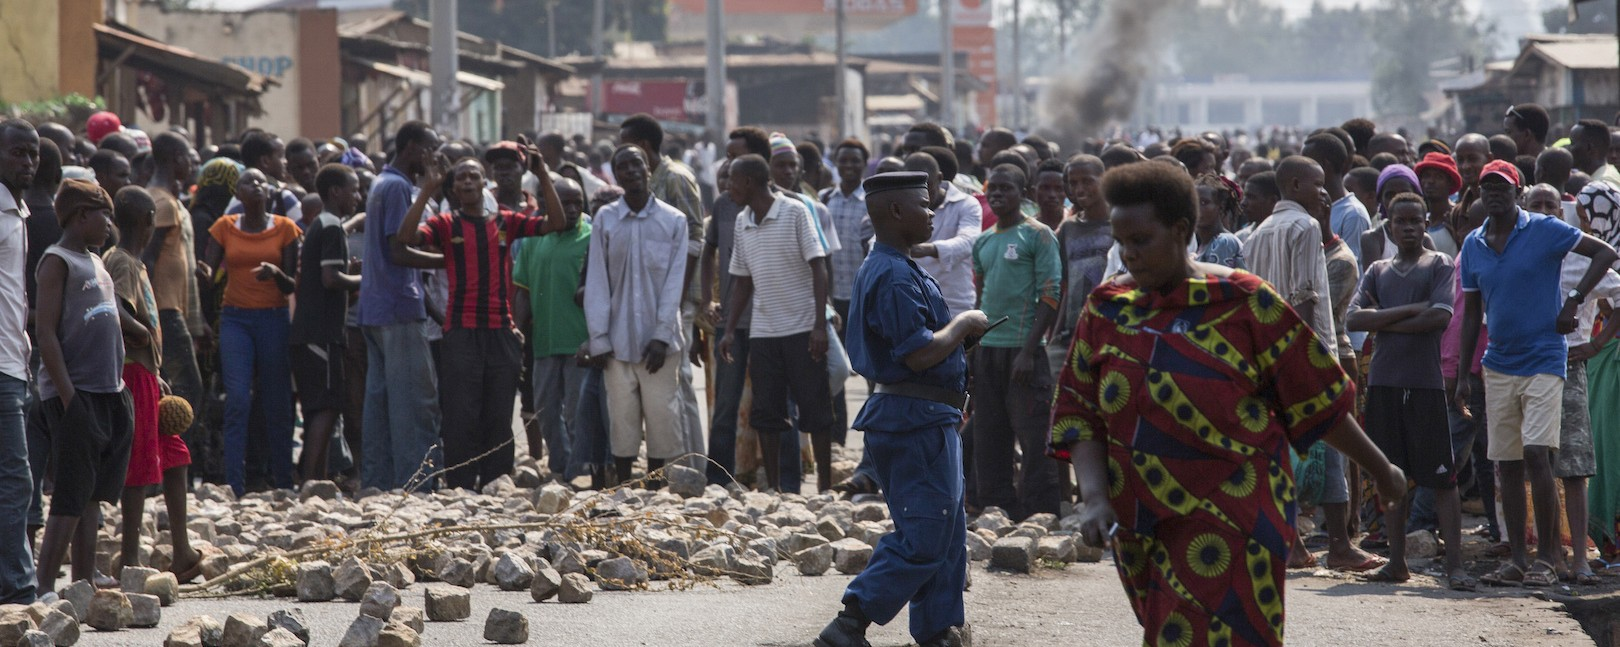 Deadly Violence Ahead of Burundi's Election Foreshadows Struggle Ahead